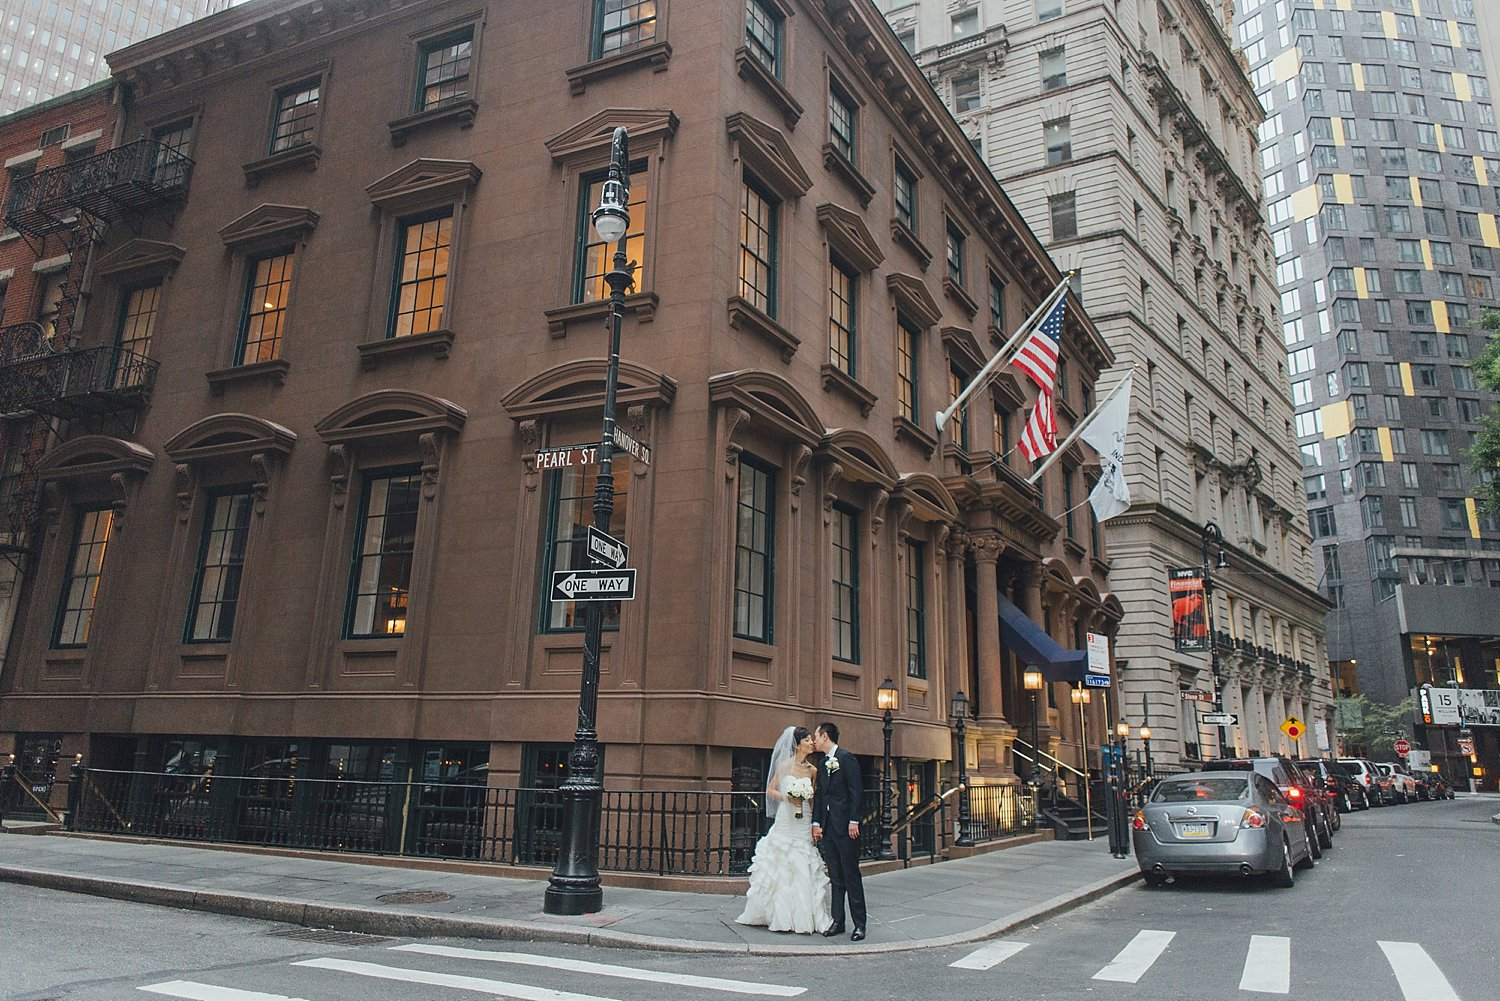 nyc-wedding-photography-nj-tri-state-cinematography-intothestory-by-moo-jae_0314.jpg